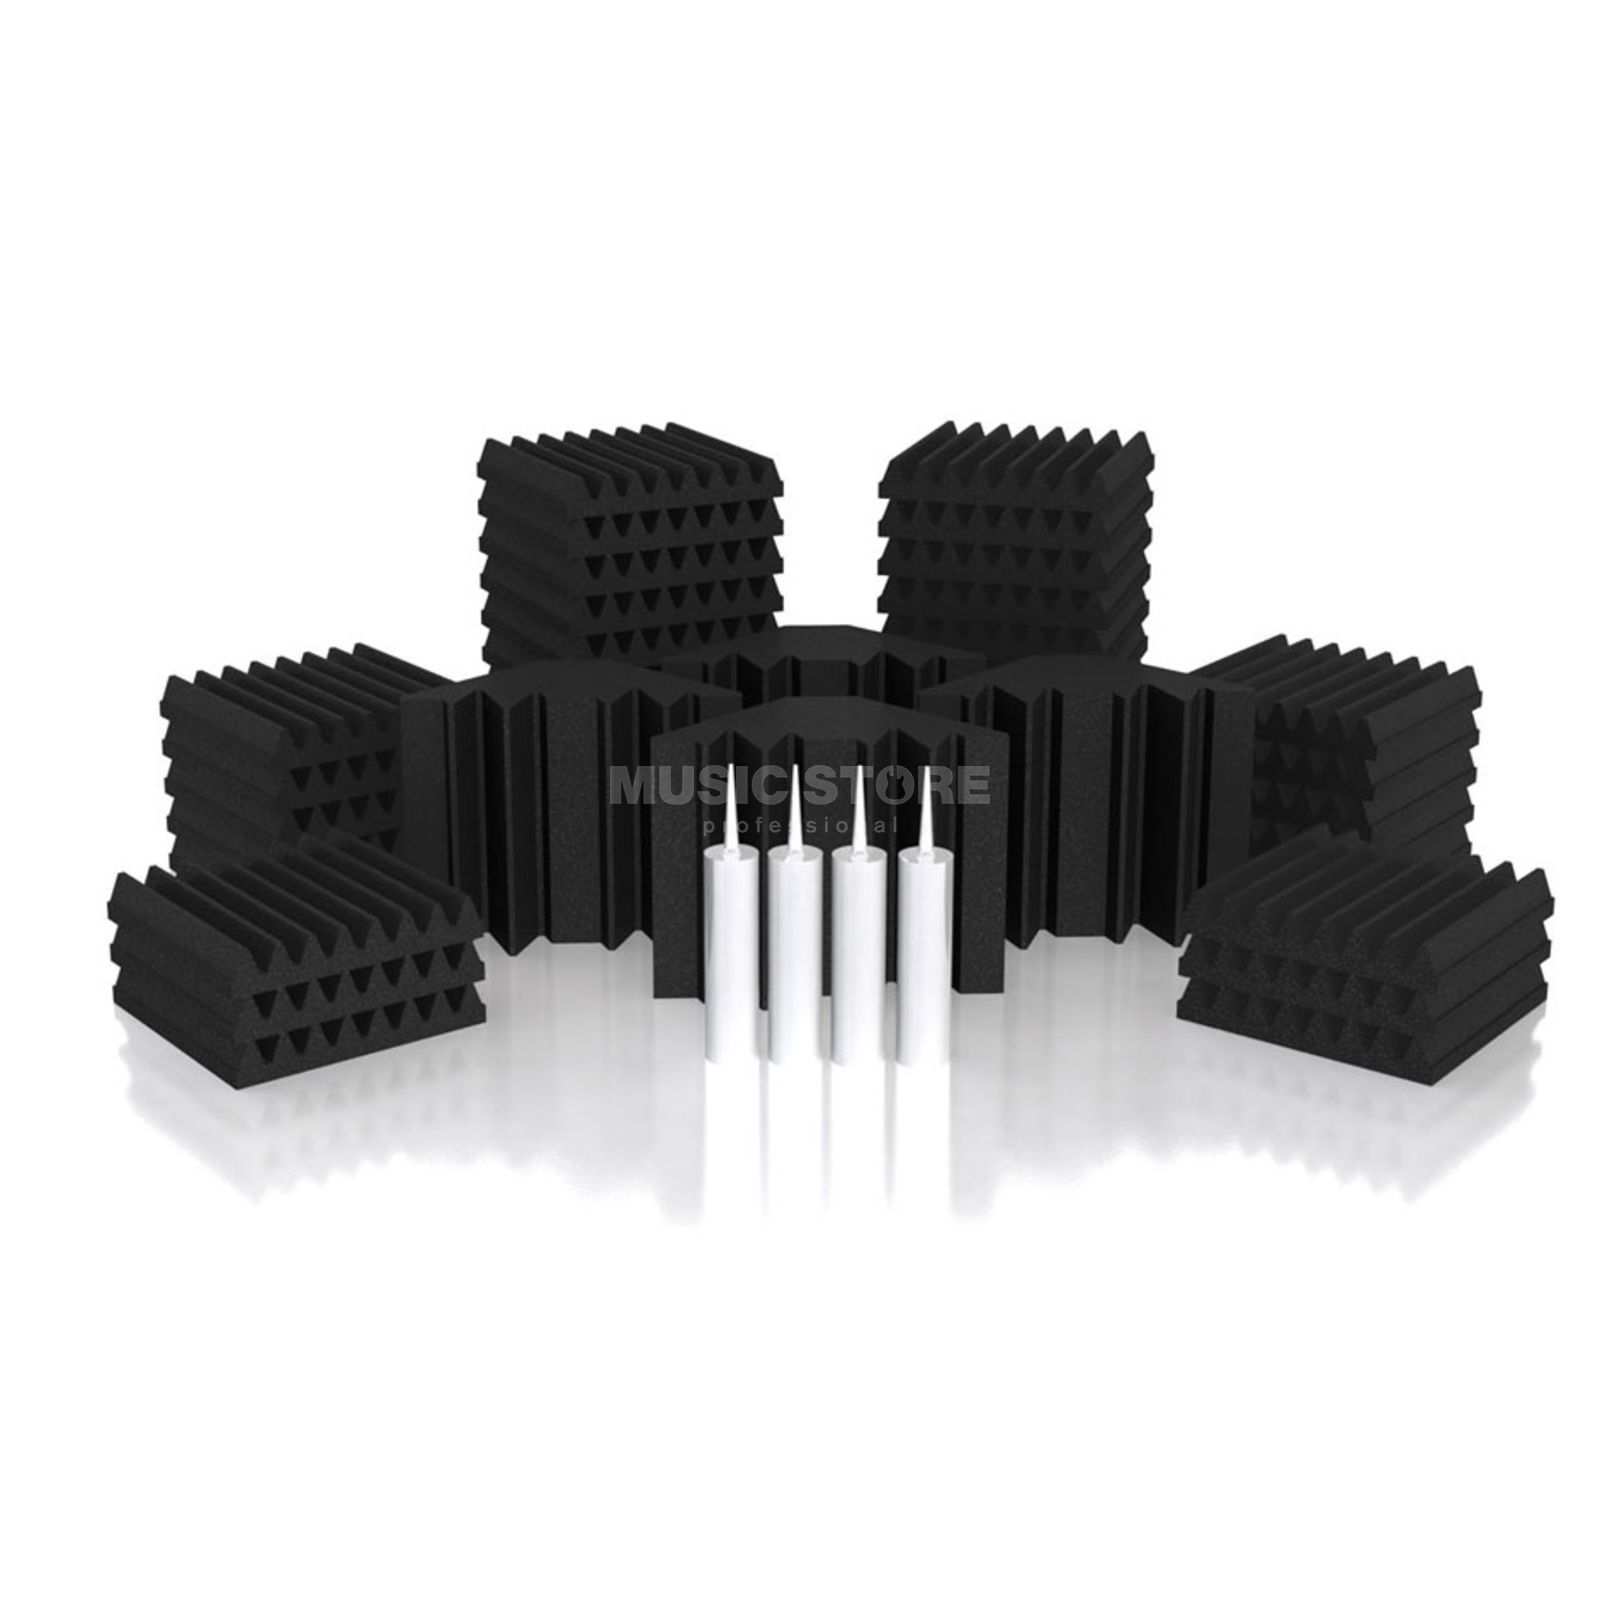 Universal Acoustics Mercury-2 Room Kit 46-teilig, 3,6m², anthrazit Produktbild